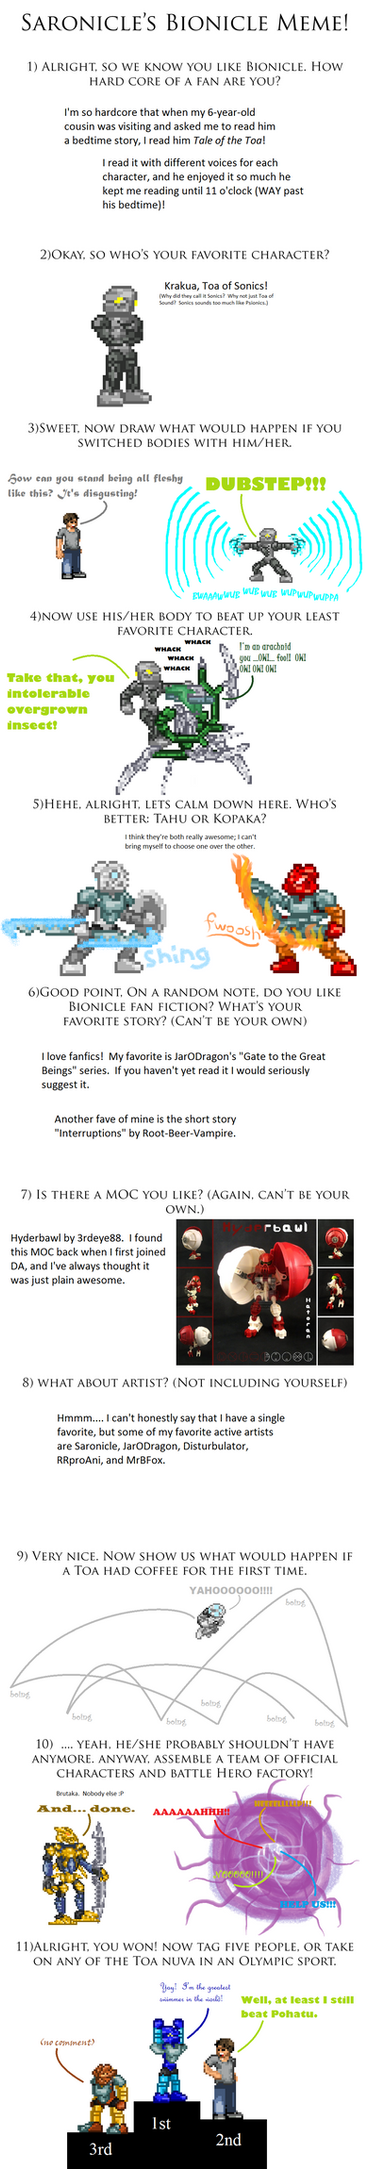 Saronicle's Bionicle Meme by JacobLazer